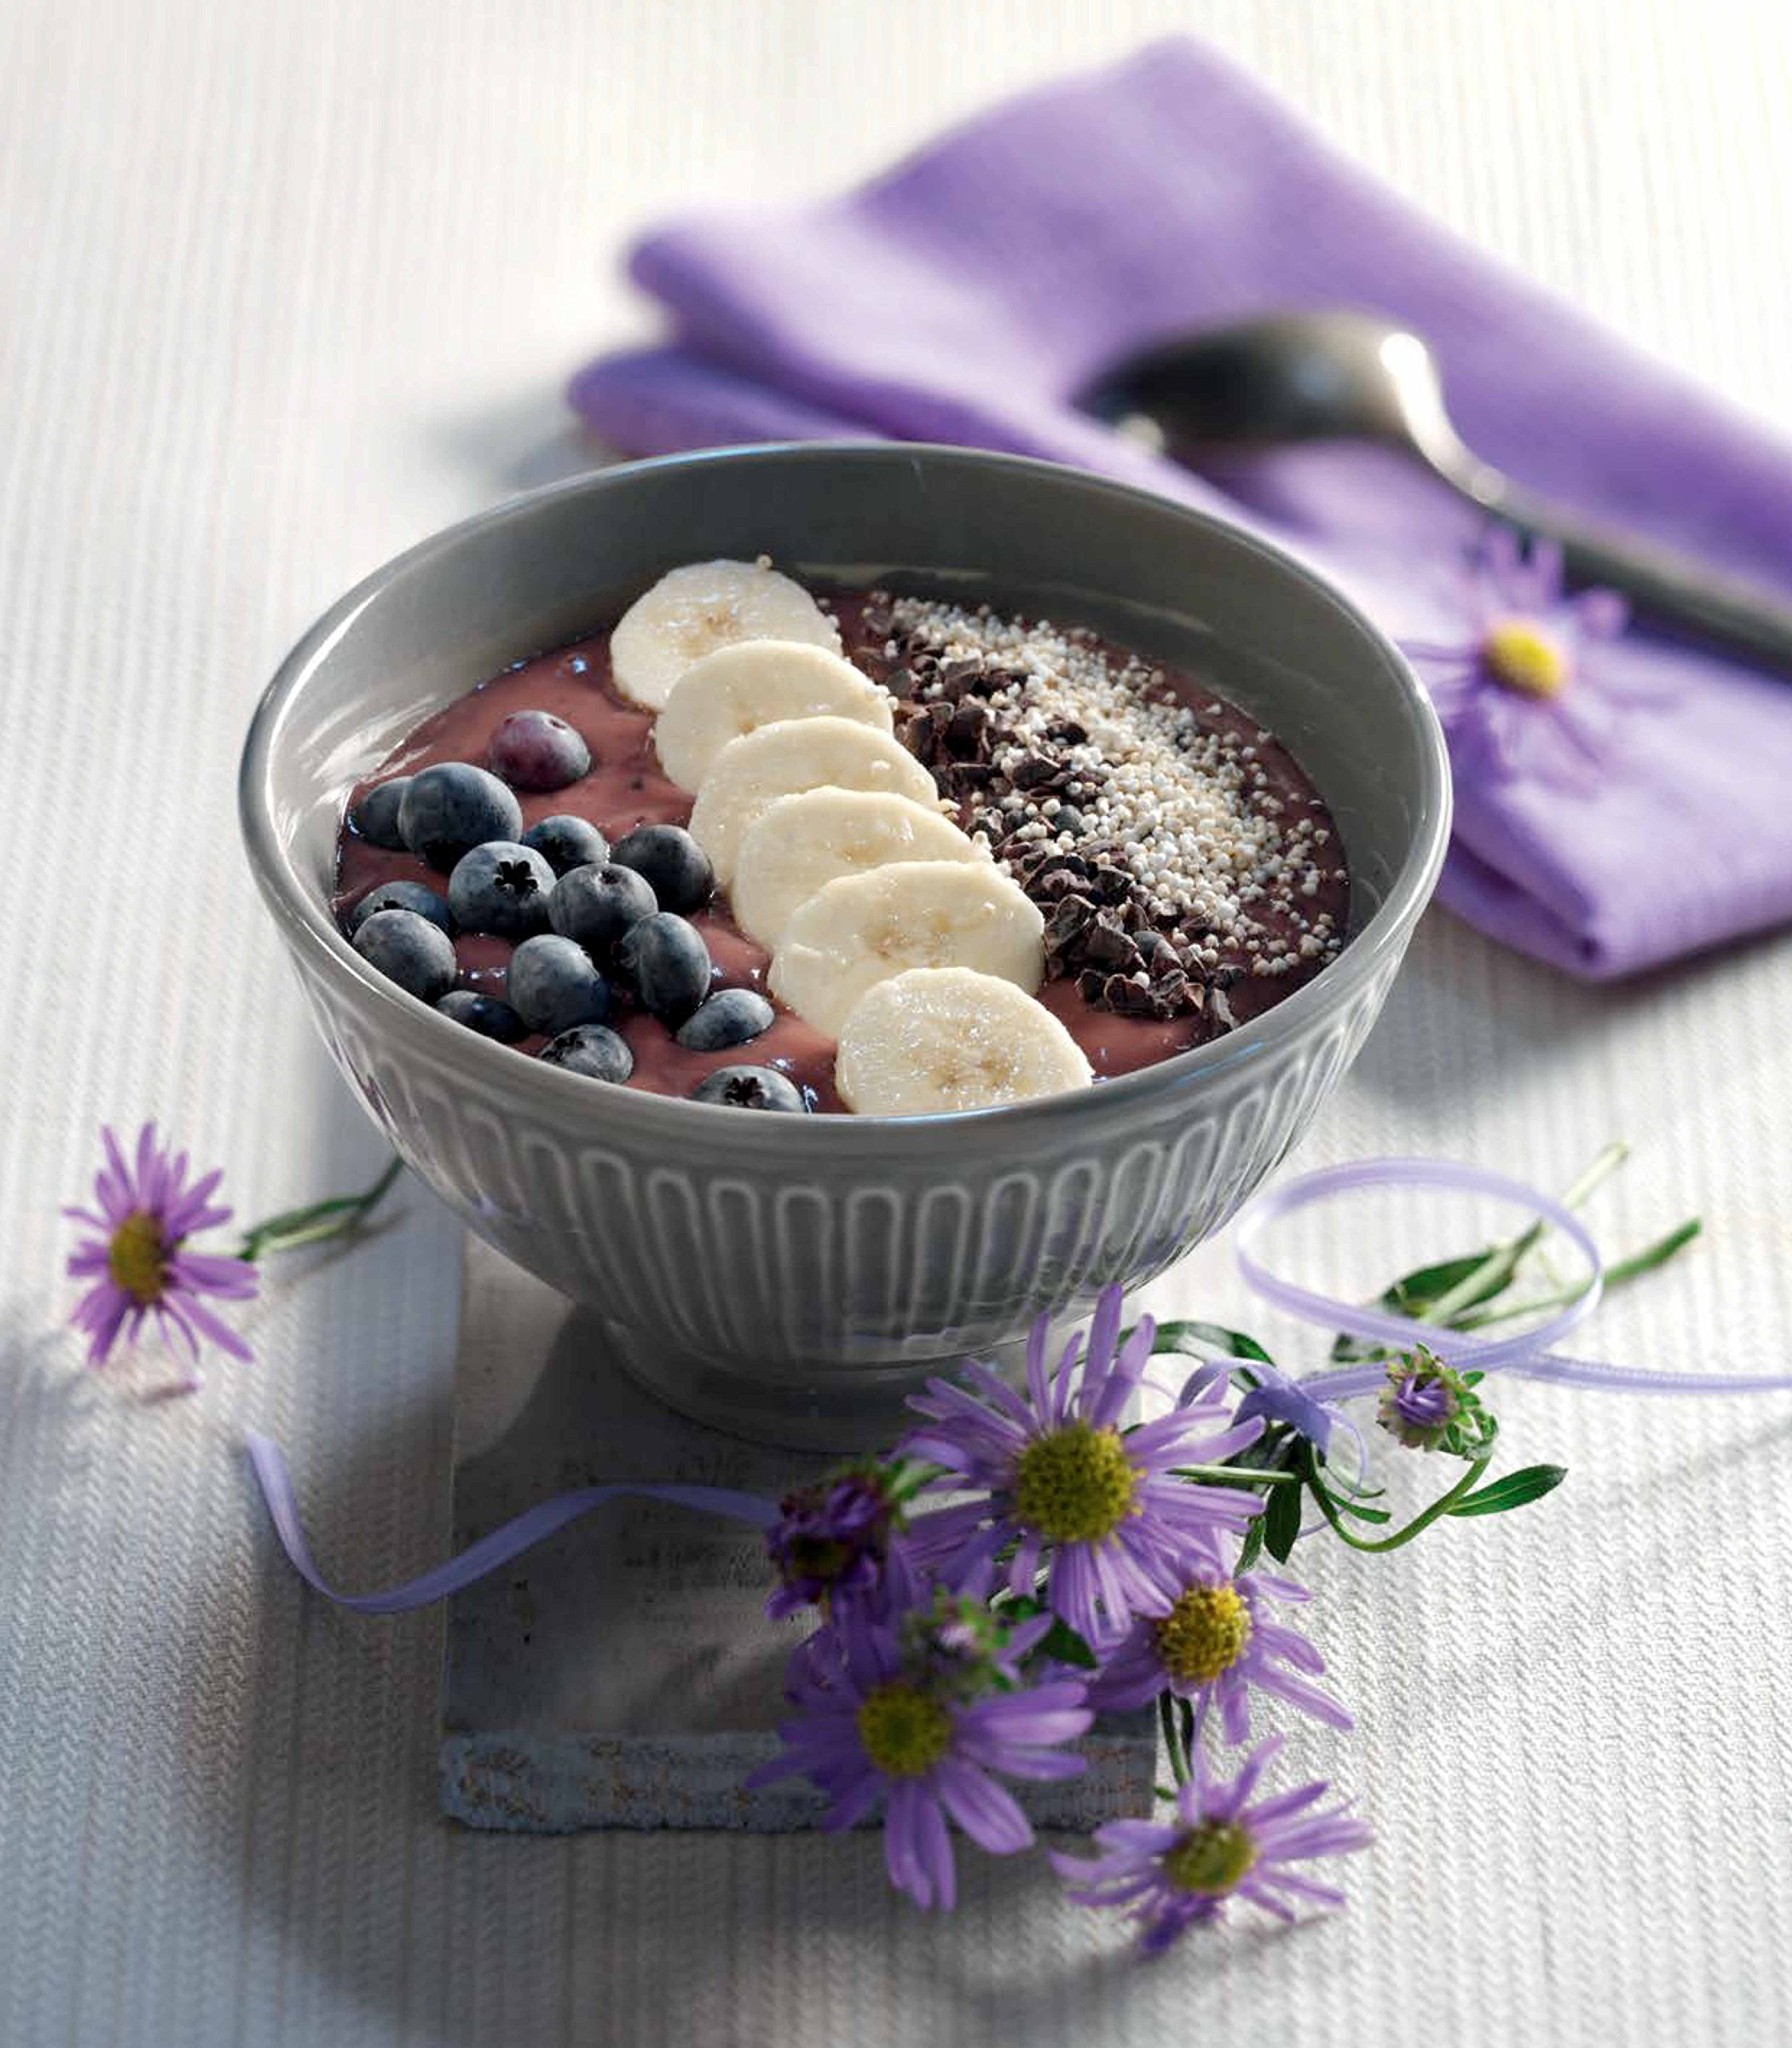 SMOOTHIE BOWLS: WIEDEMANN: 9783625006909: Amazon.com: Books